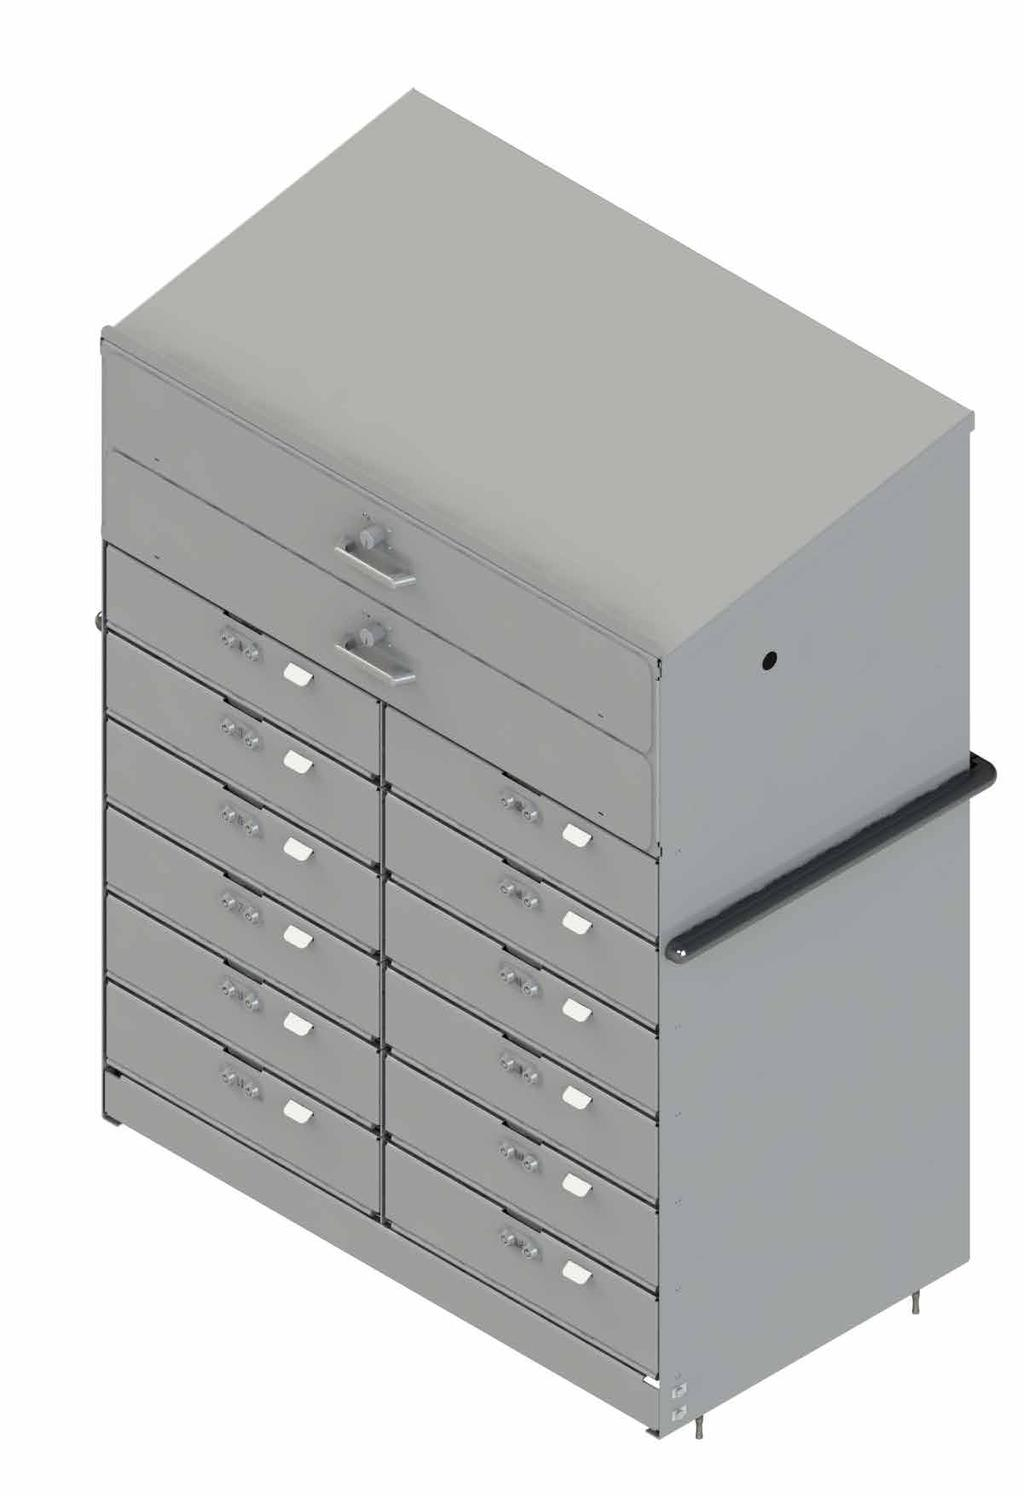 drawers at top of cabinet secure any valuables with lock. Large drawer dims: 35 W x 20 L x 5.